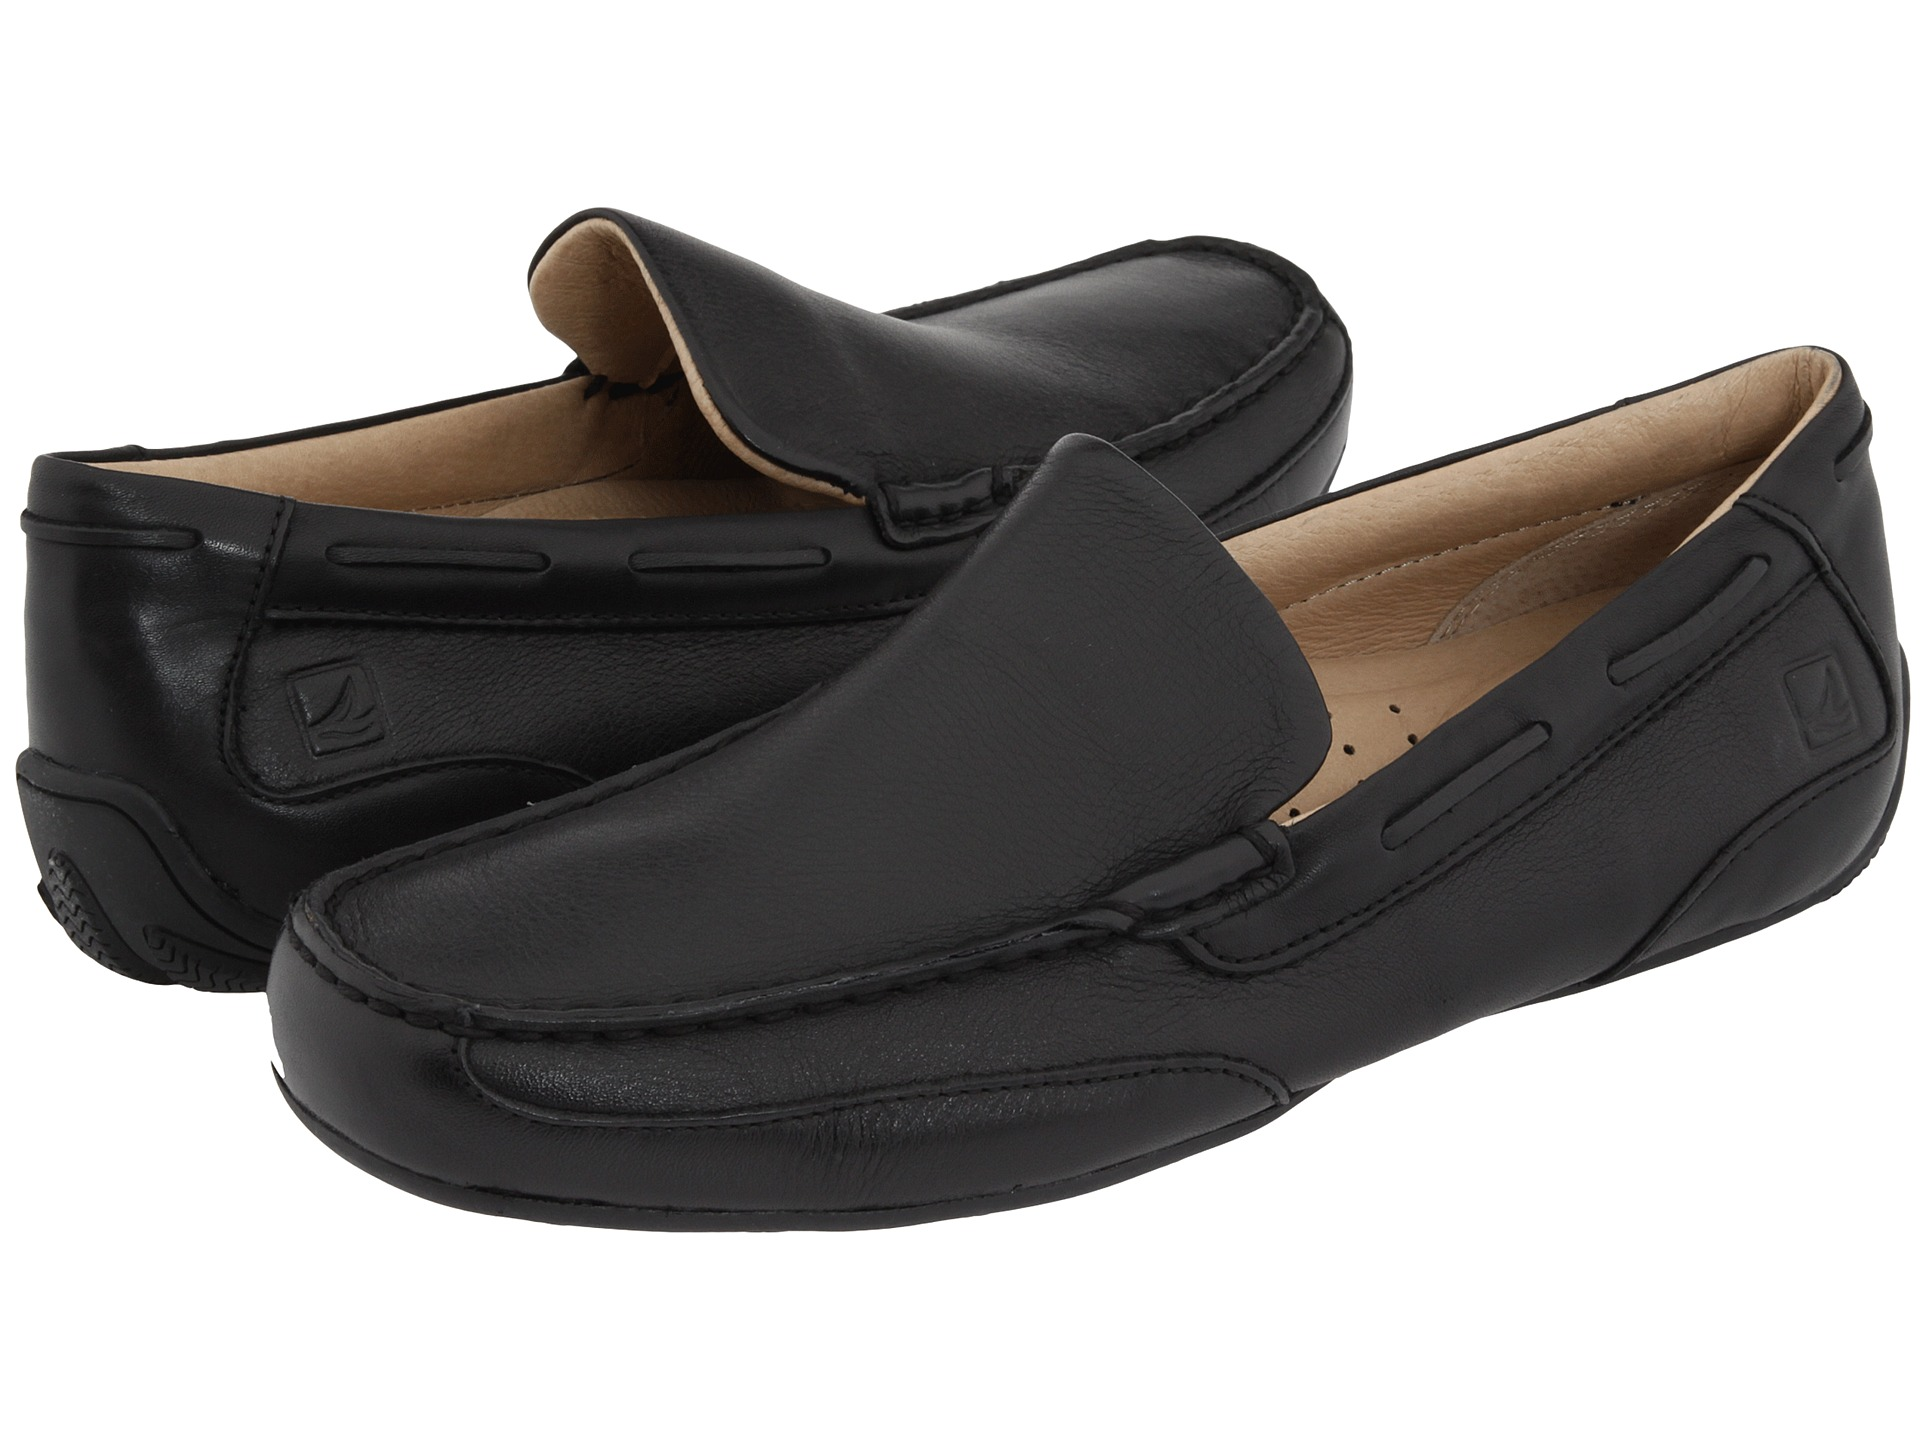 Sperry Shoes Men Images Mens Dress Christmas